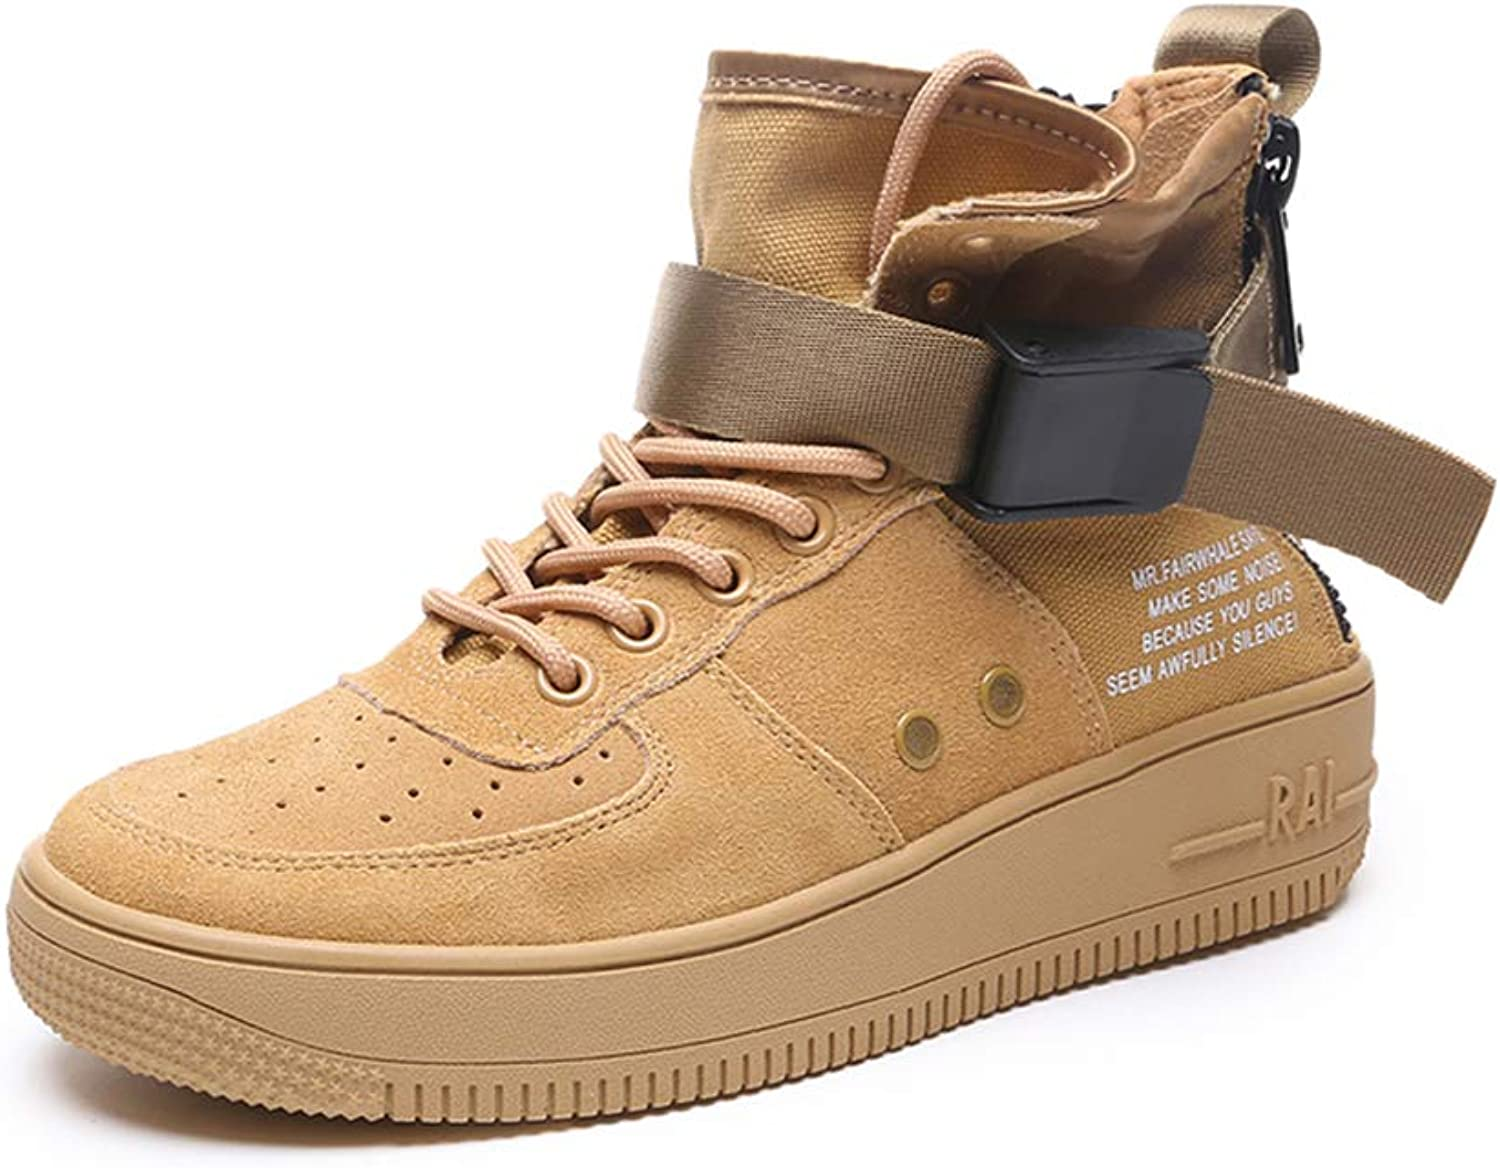 IGxx Men's High-top Sneakers Suede Hook&Loop Lace-up Basketball shoes Women Girl